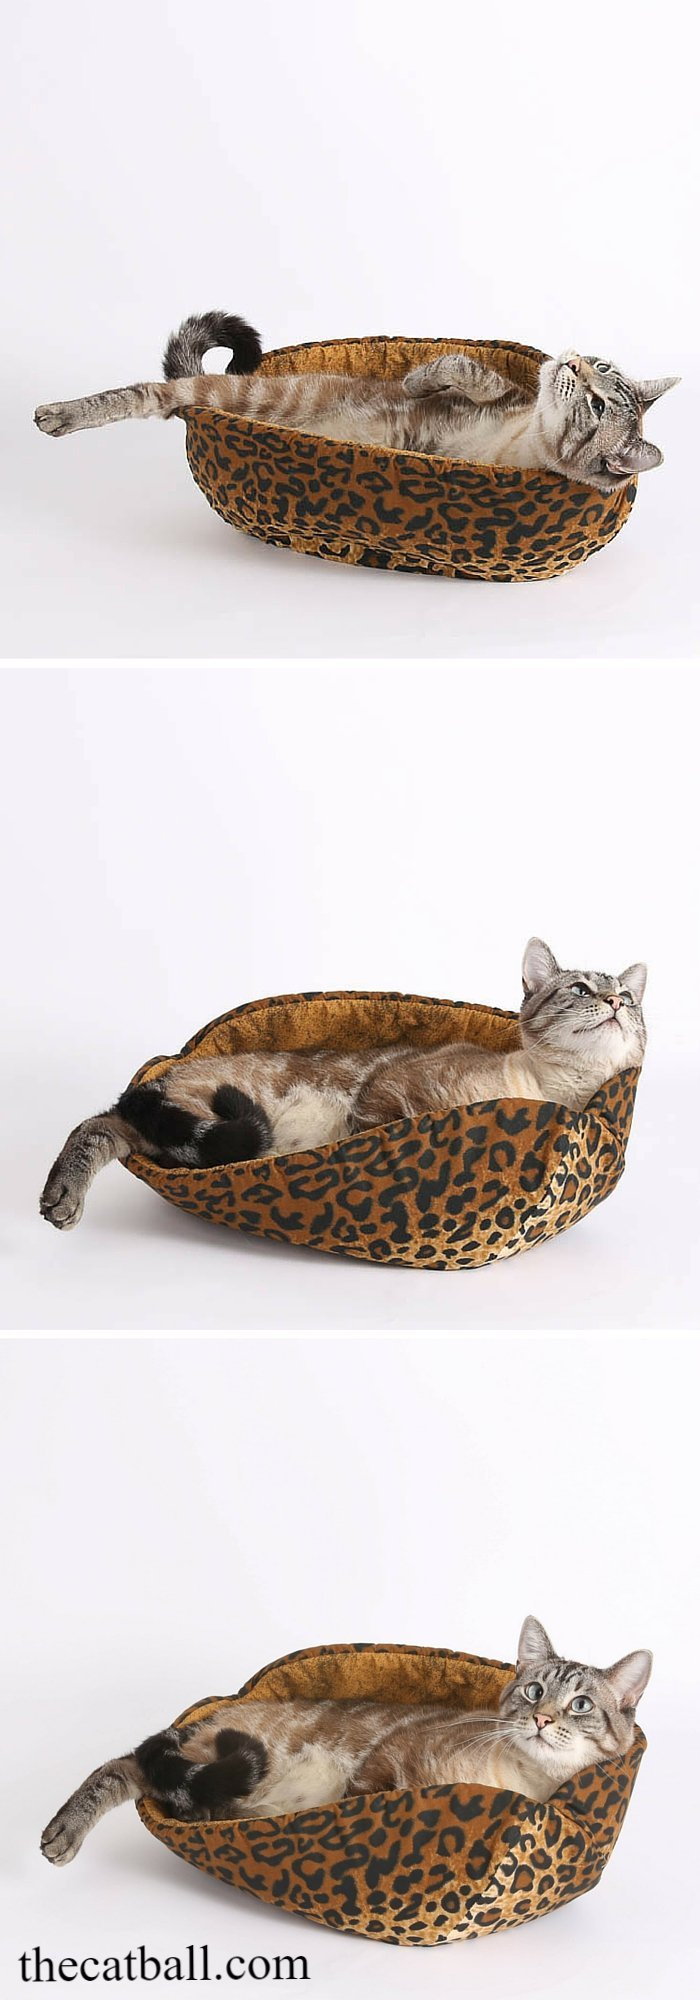 The Cat Canoe modern pet bed is made here in a cotton leopard print fabric. This cat bed was made in the USA.